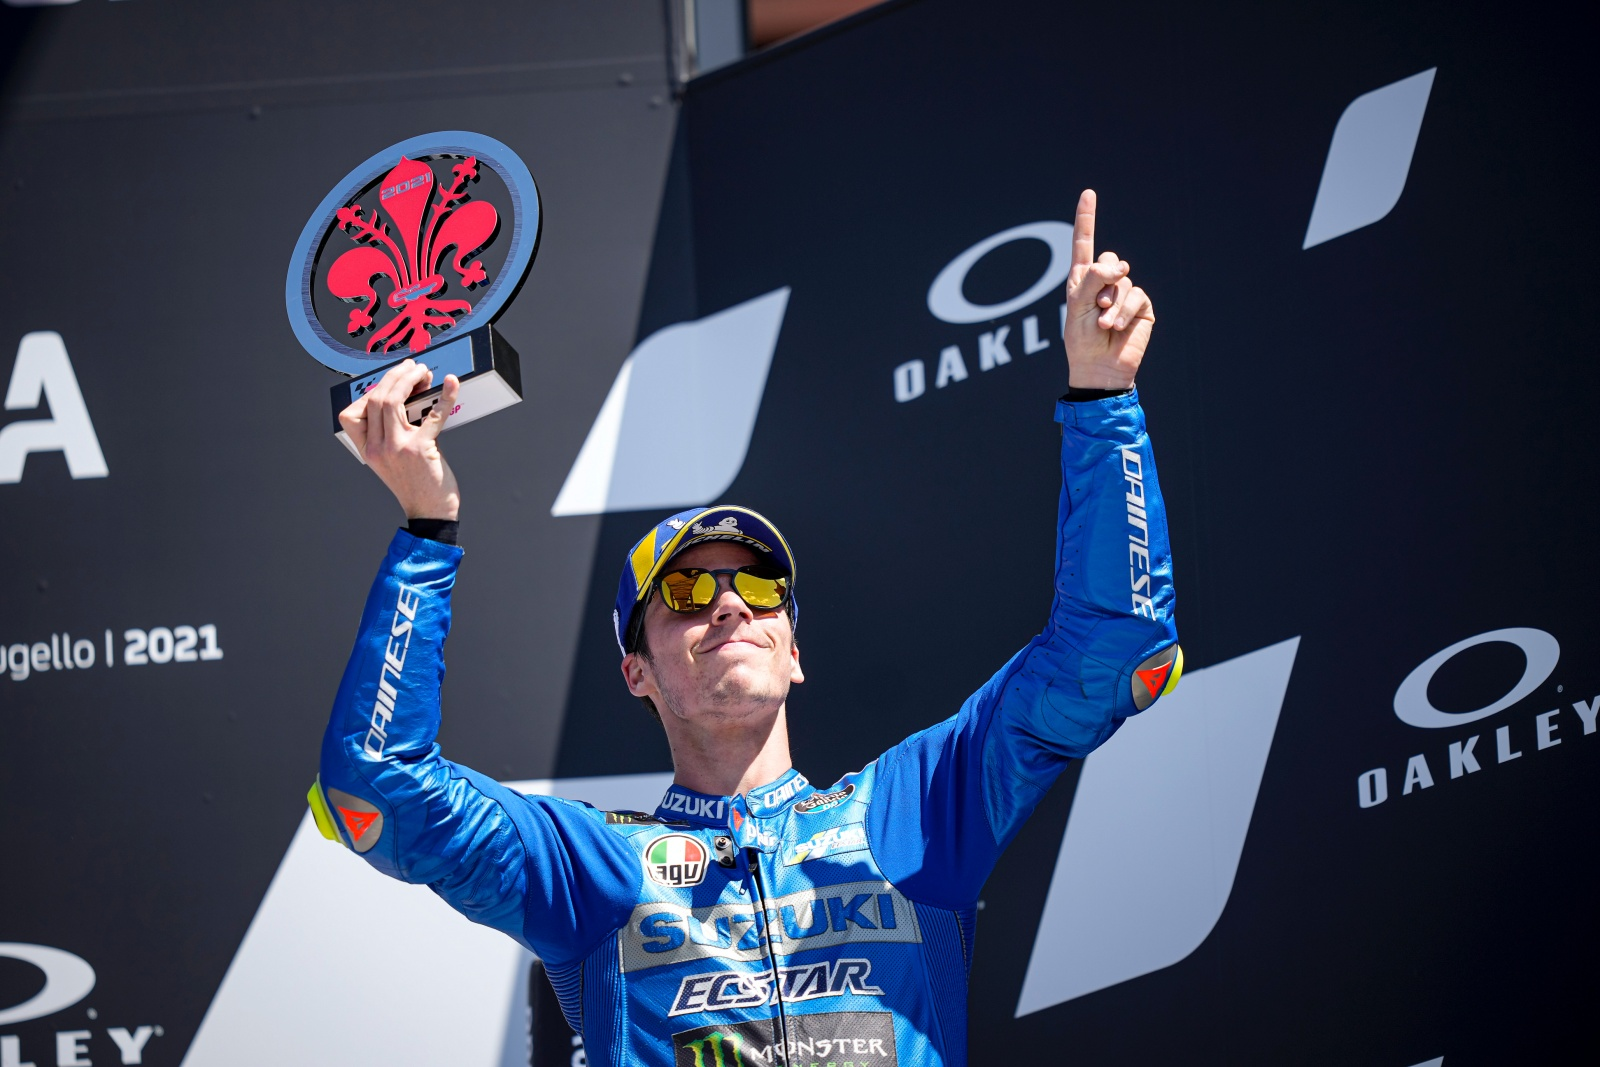 A PODIUM FOR JOAN MIR AFTER A TRAGIC WEEKEND IN MUGELLO